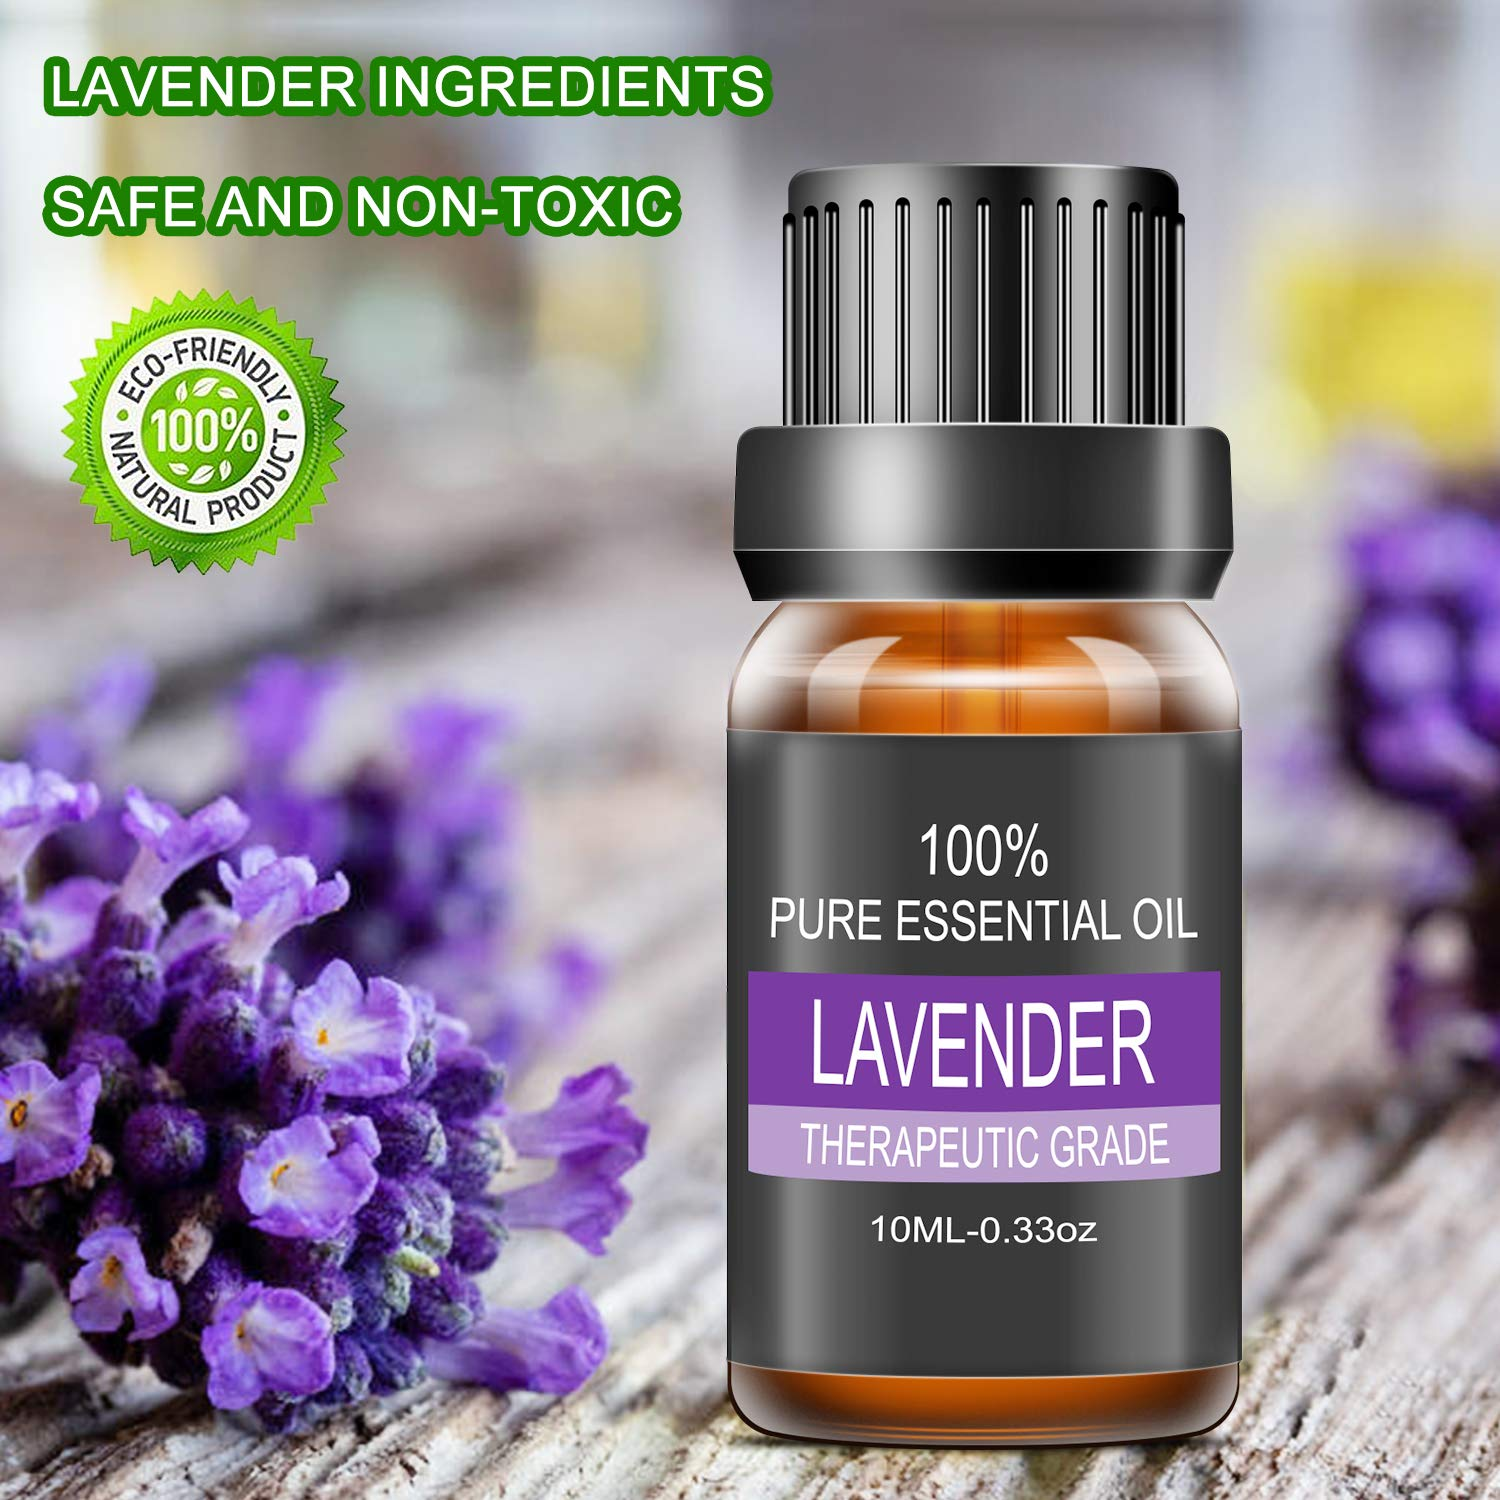 LATITOP Lavender Essential Oil, 100% Pure & Natural Aromatherapy Essential Oils for Diffuser, Humidifier, Massage, Aromatherapy (10ml)